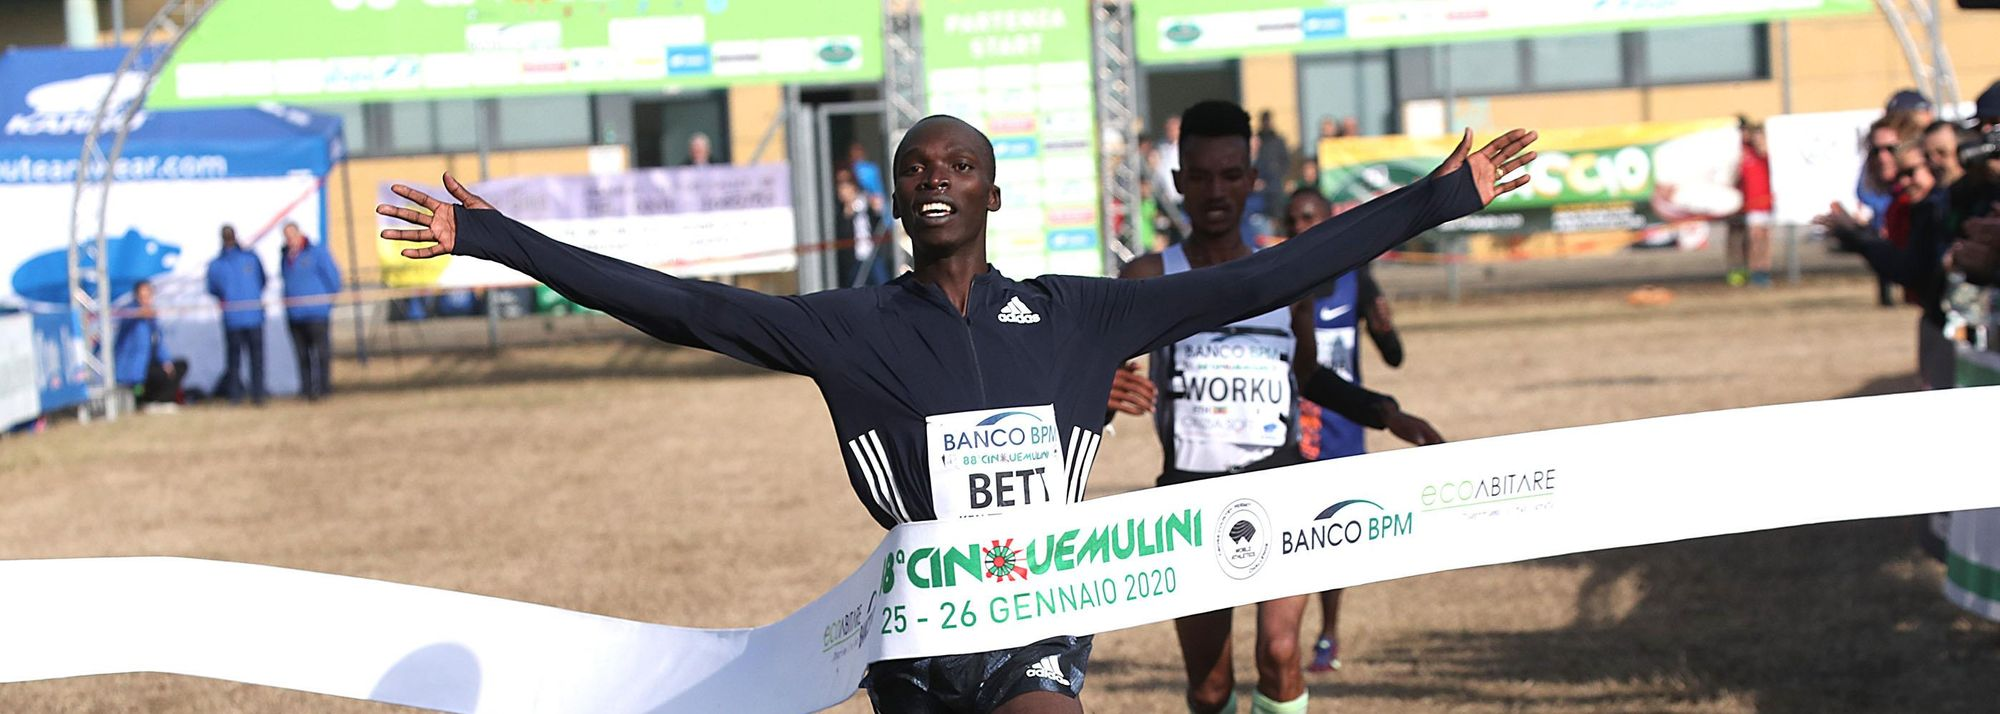 Kenyan Leonard Bett will be gunning for a successful title defence at the 89th edition of Cinque Mulini on Sunday (28), the historic race in the northern Italian city of San Vittore Olona which serves as the second leg of the 2021 World Athletics Cross Country Permit series.